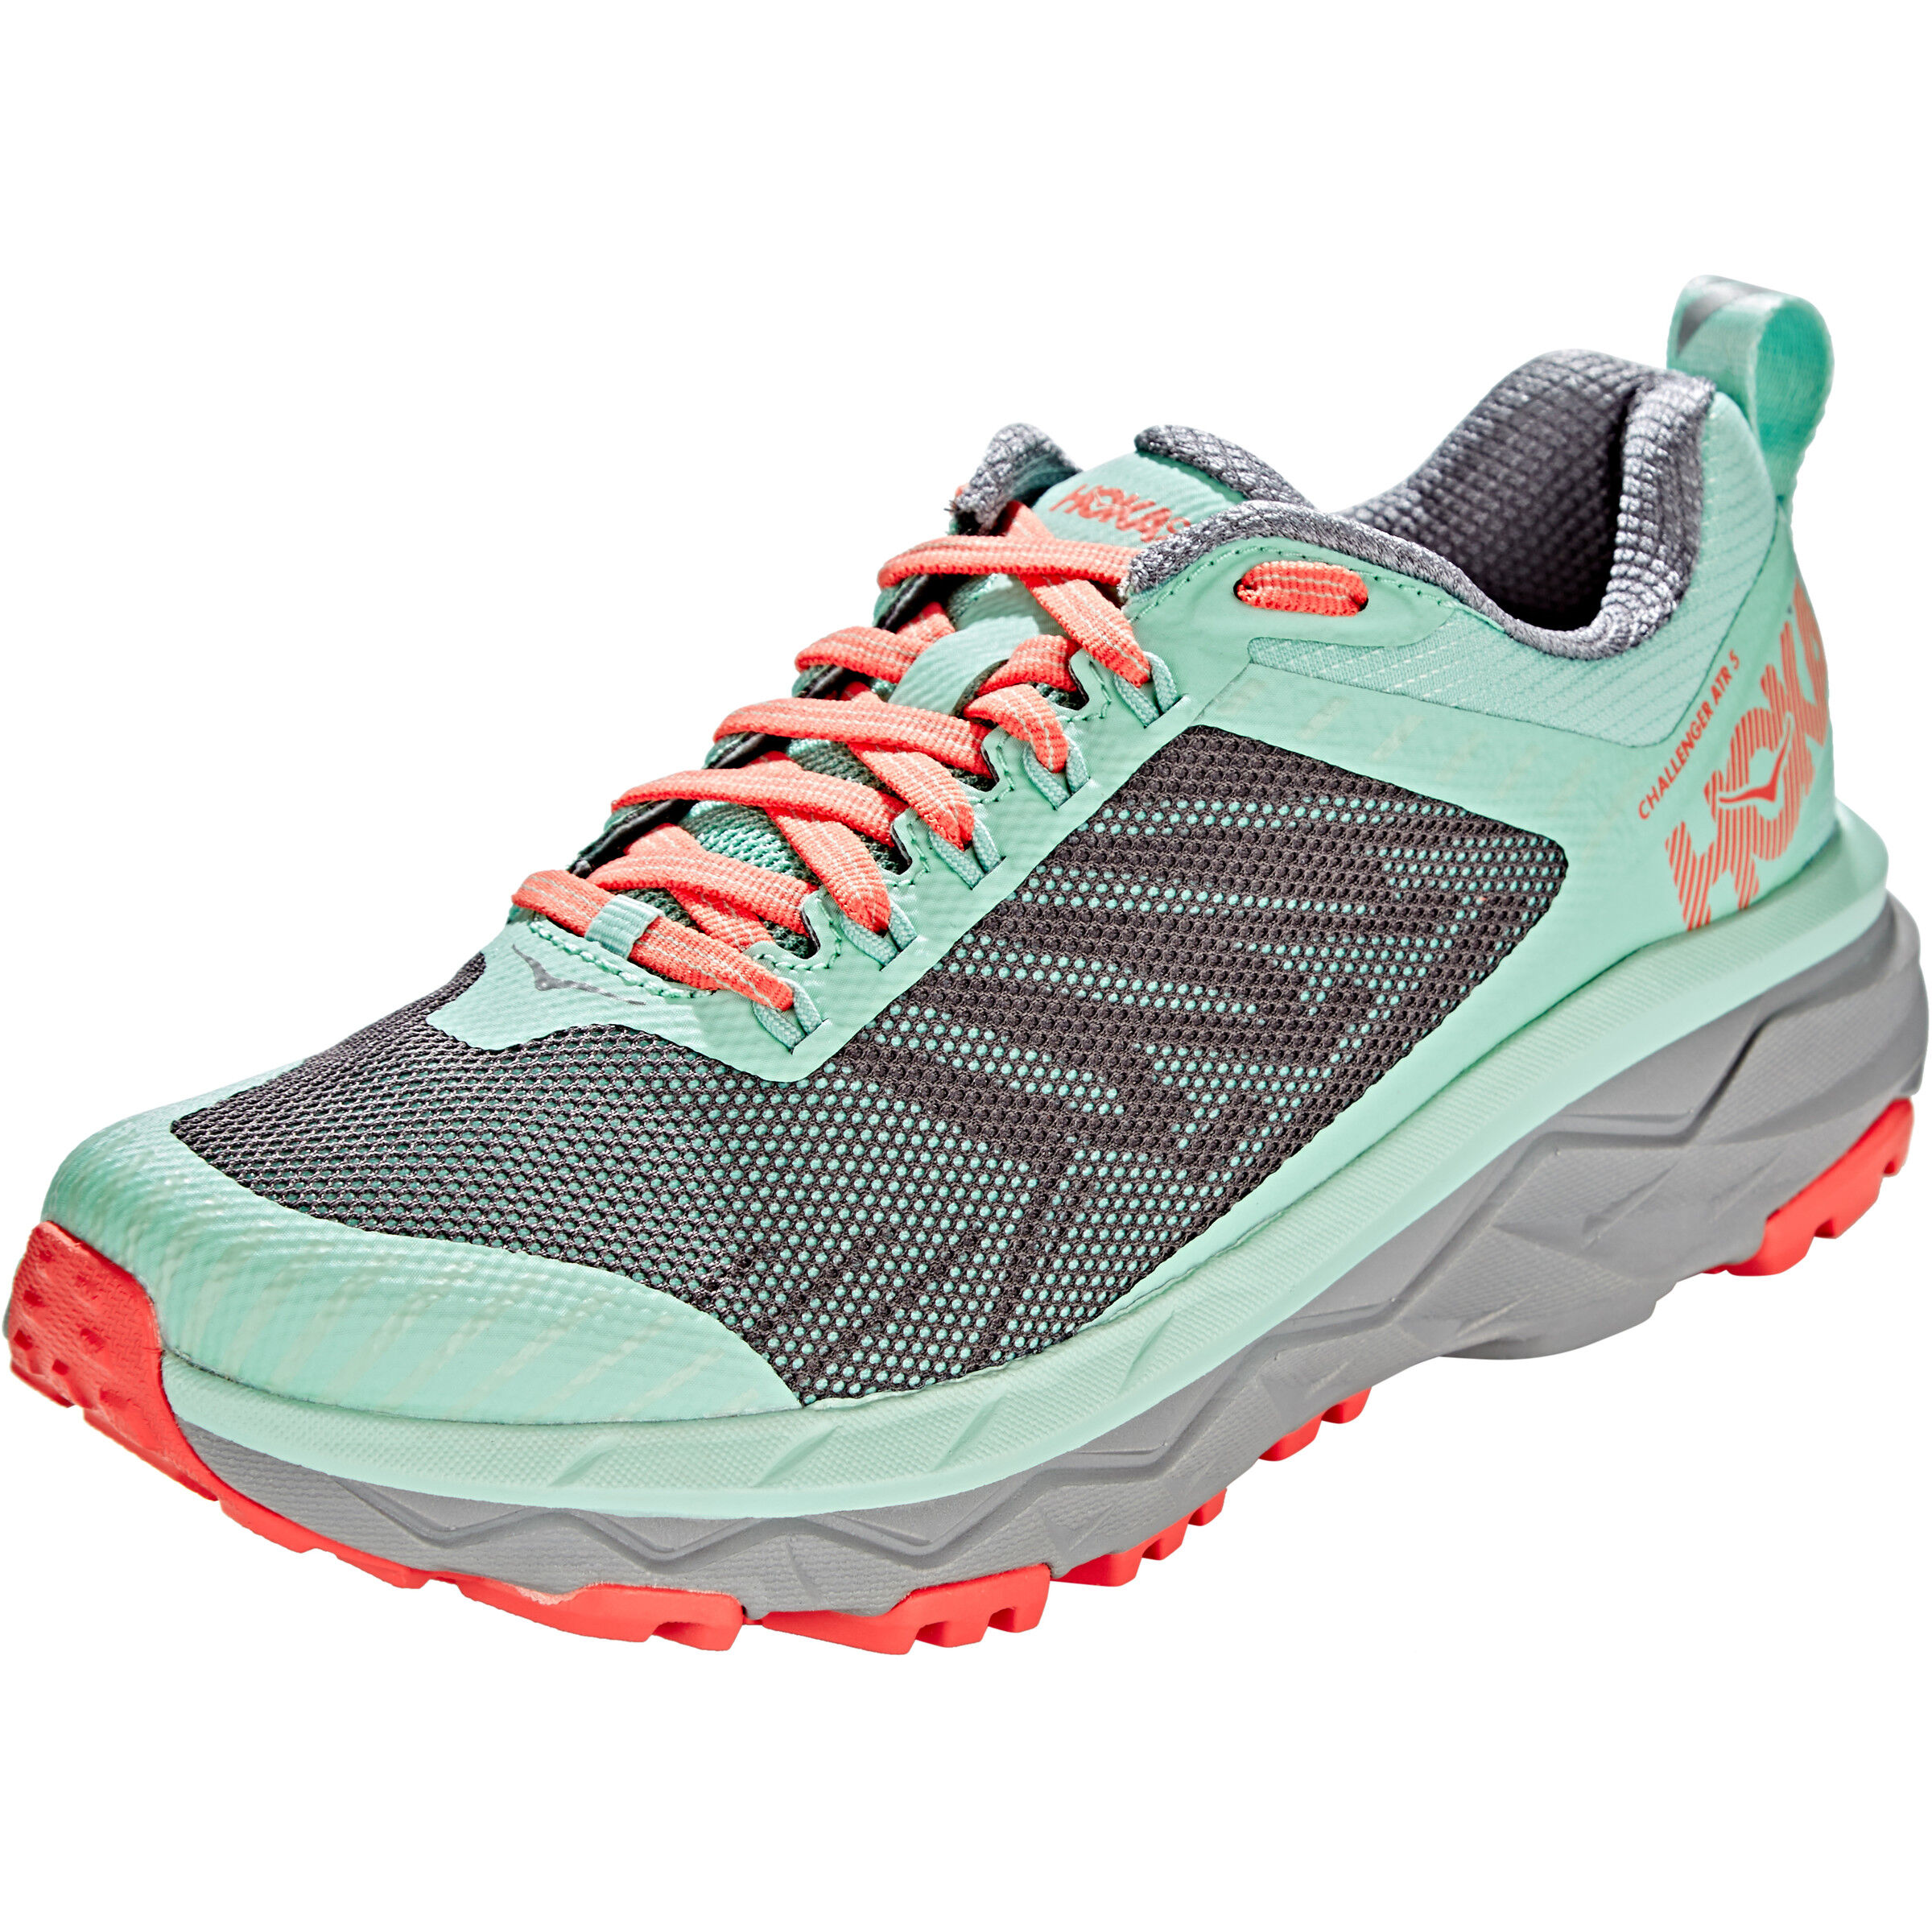 Hoka One One Challenger ATR 5 Shoes Dam pavementlichen